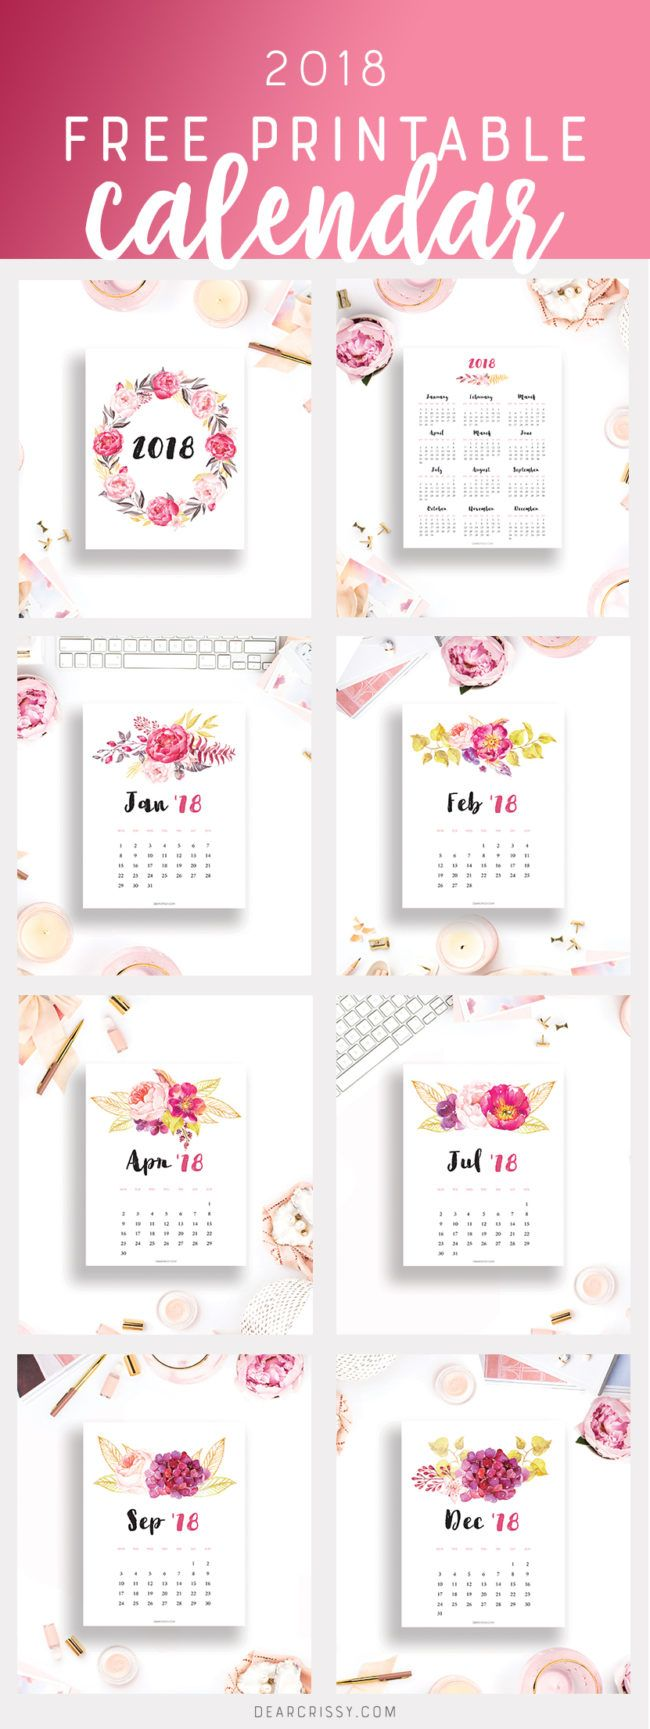 Free Printable 2018 Calendar - This beautiful floral printable calendar will help you plan and organize your new year in gorgeous style. #calendar #freeprintable #printable #2018